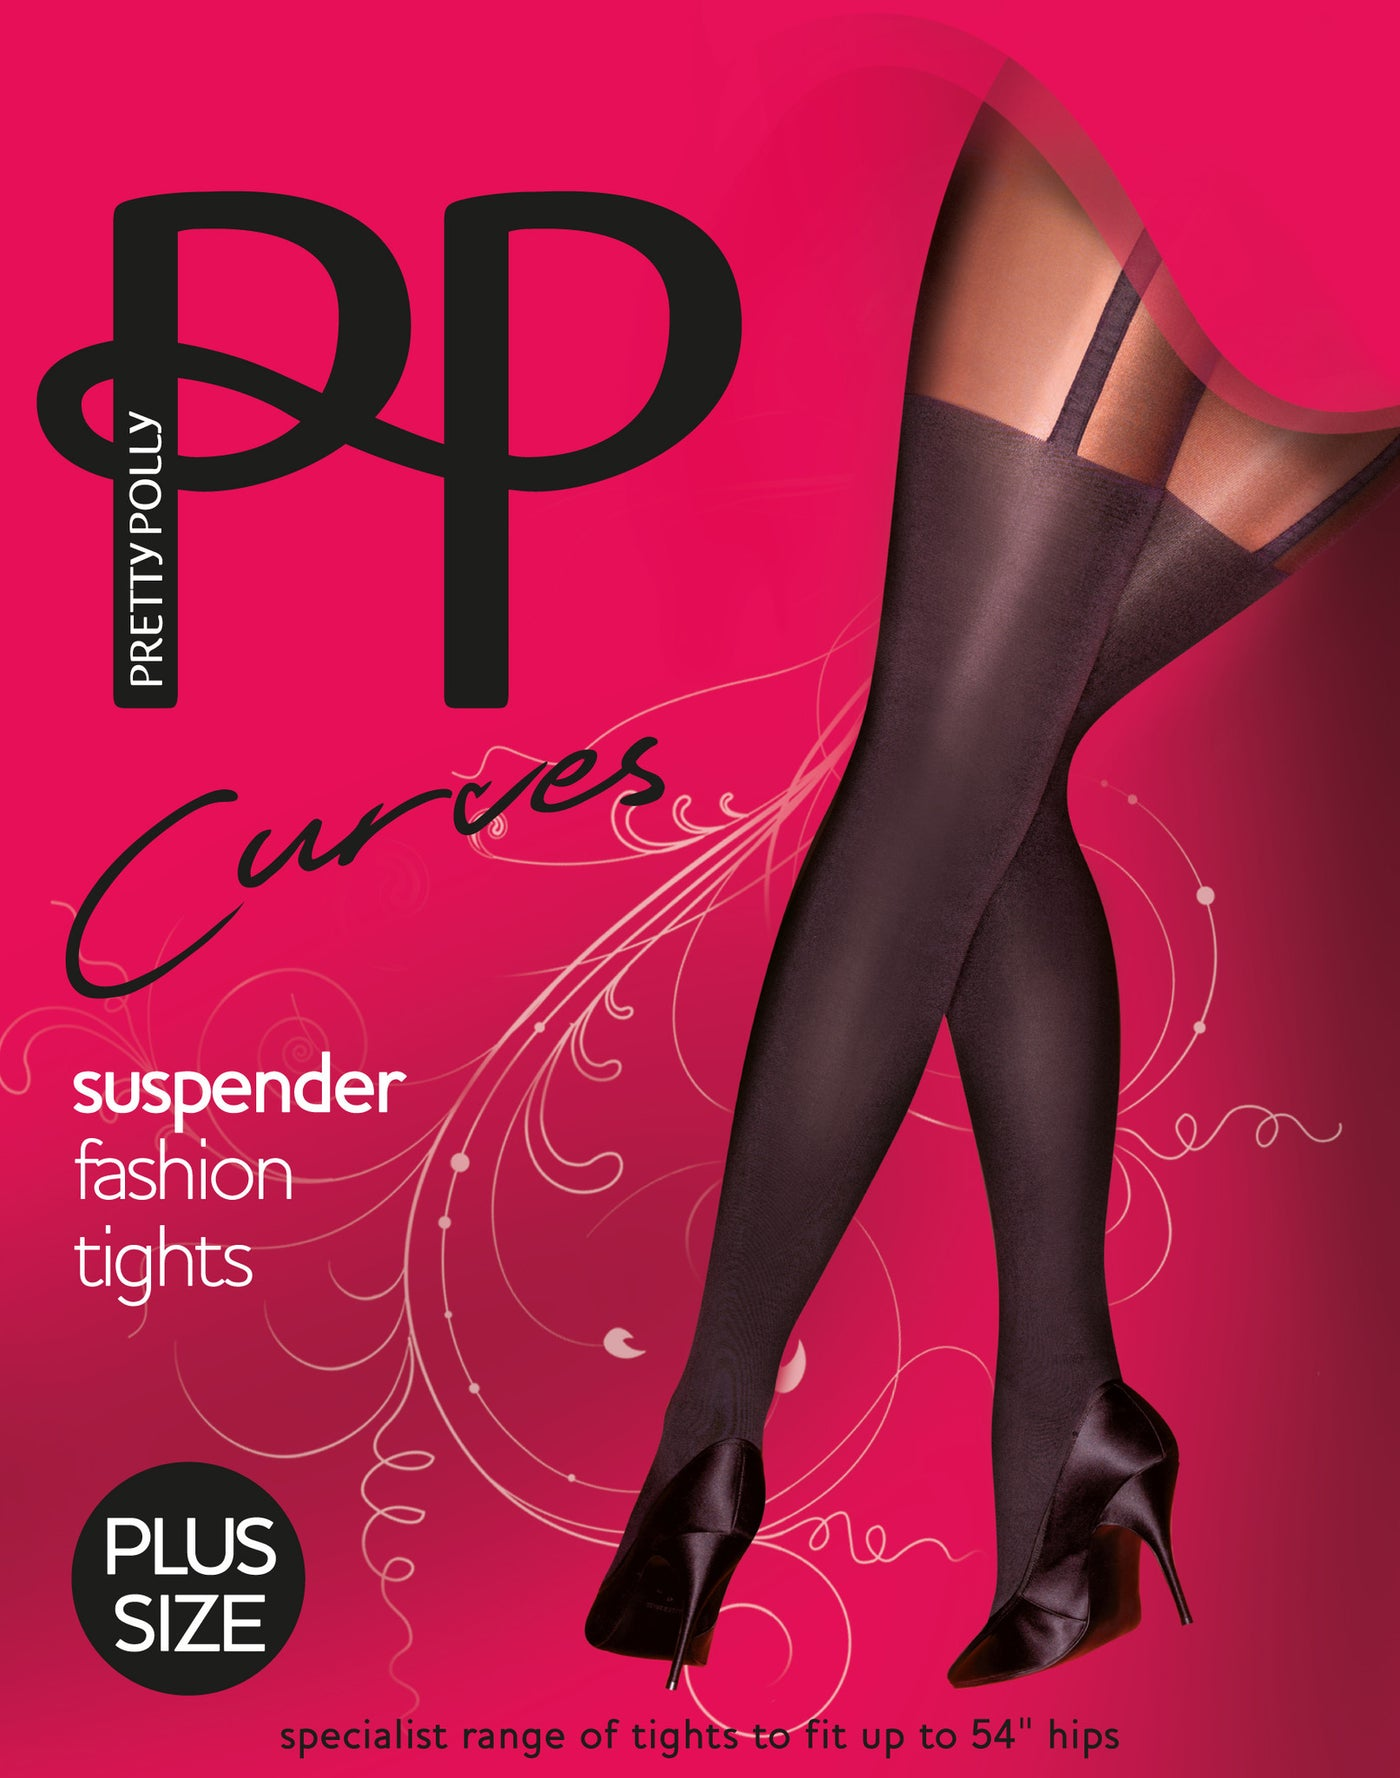 ffe887171 Pretty Polly Curves Suspender Fashion Tights are fake suspender style hose  and are tights or pantyhose